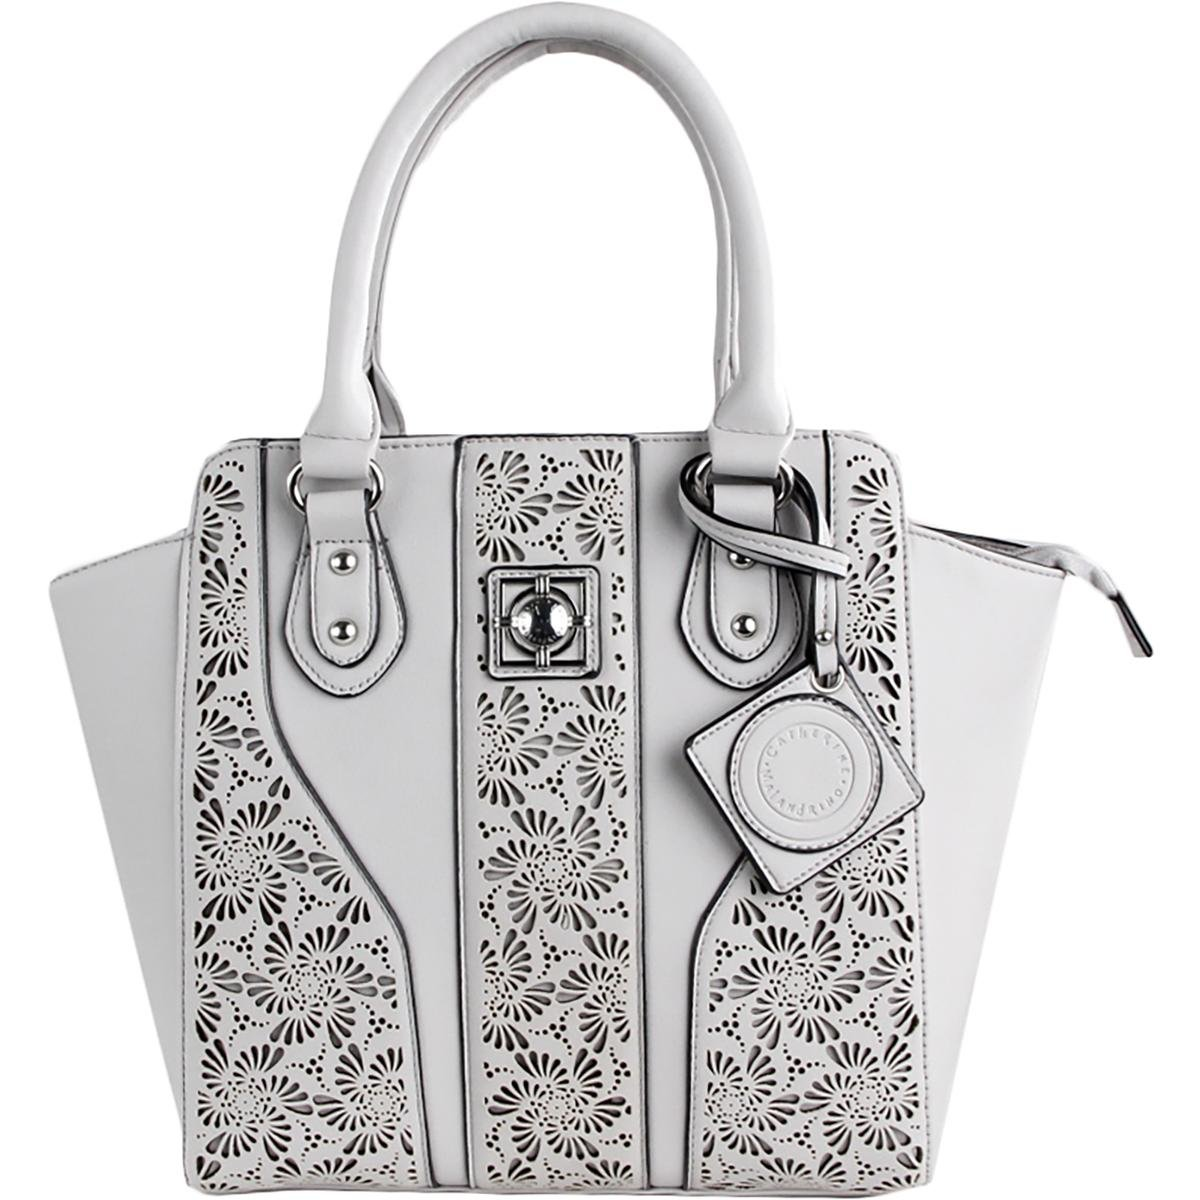 Catherine Malandrino Womens Collette Leather Cut-Out Tote Handbag Gray Large